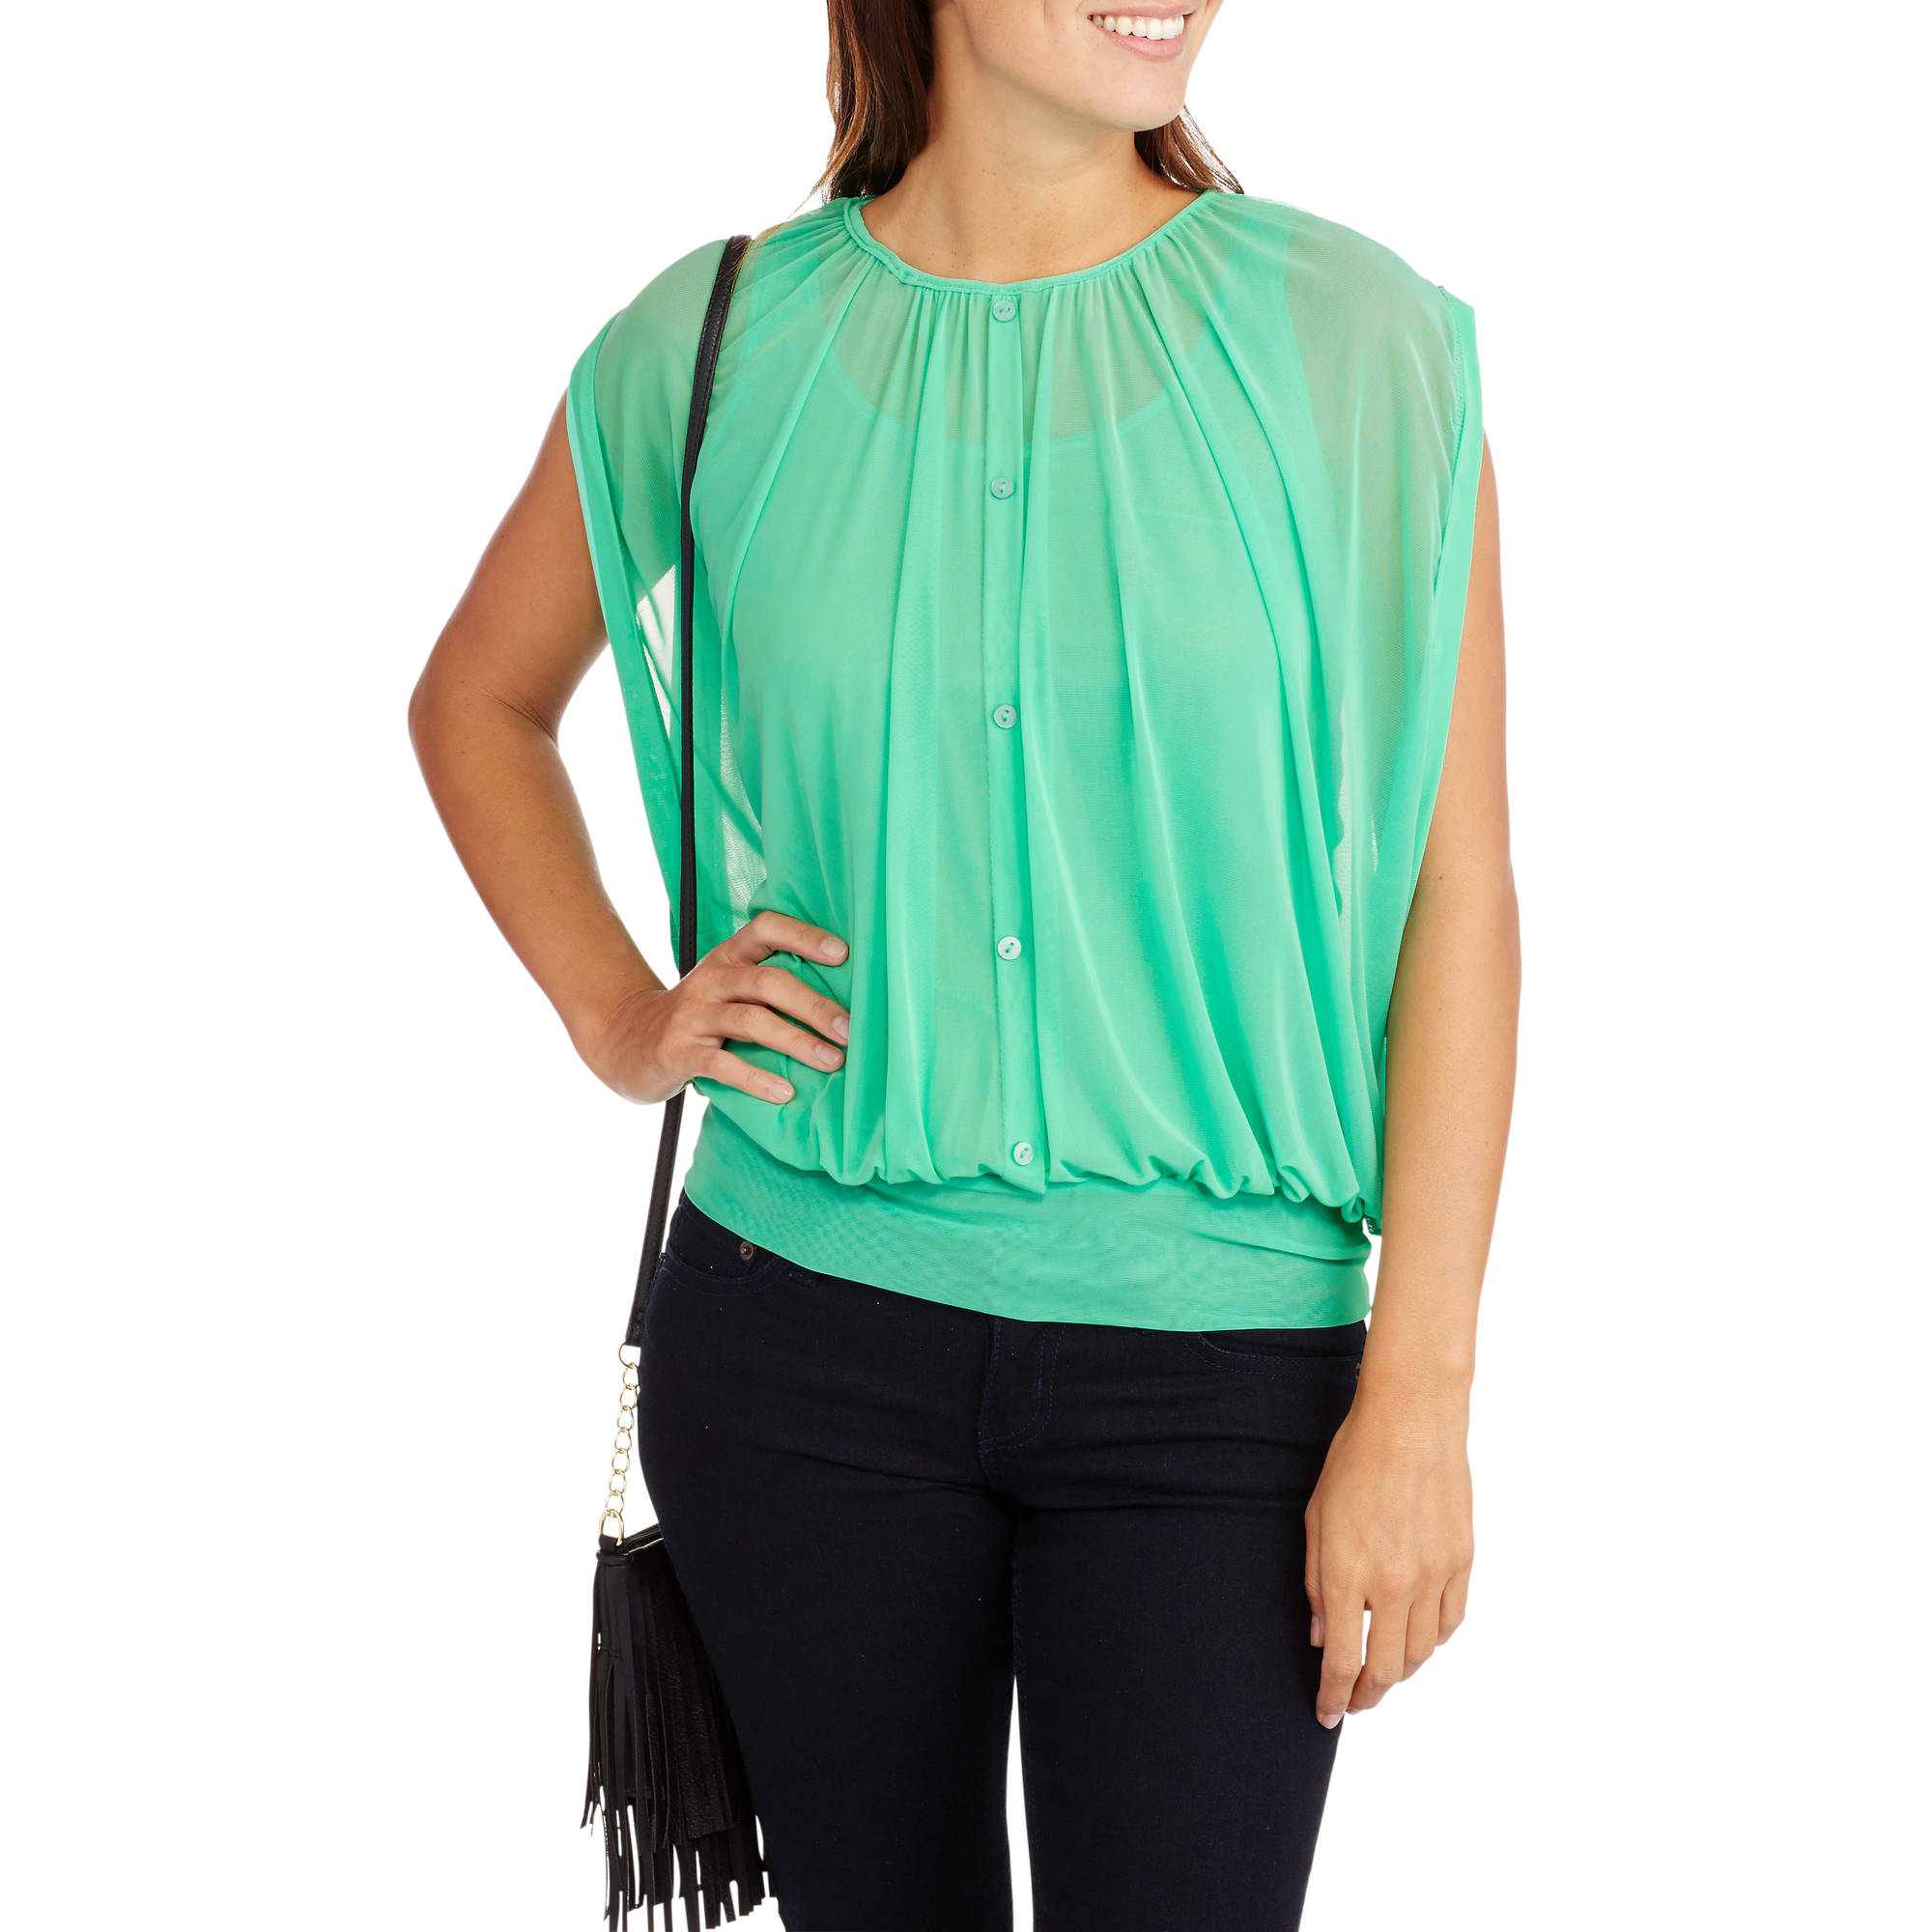 French Laundry Women's Sheer Blouson Top With Built-In Tank